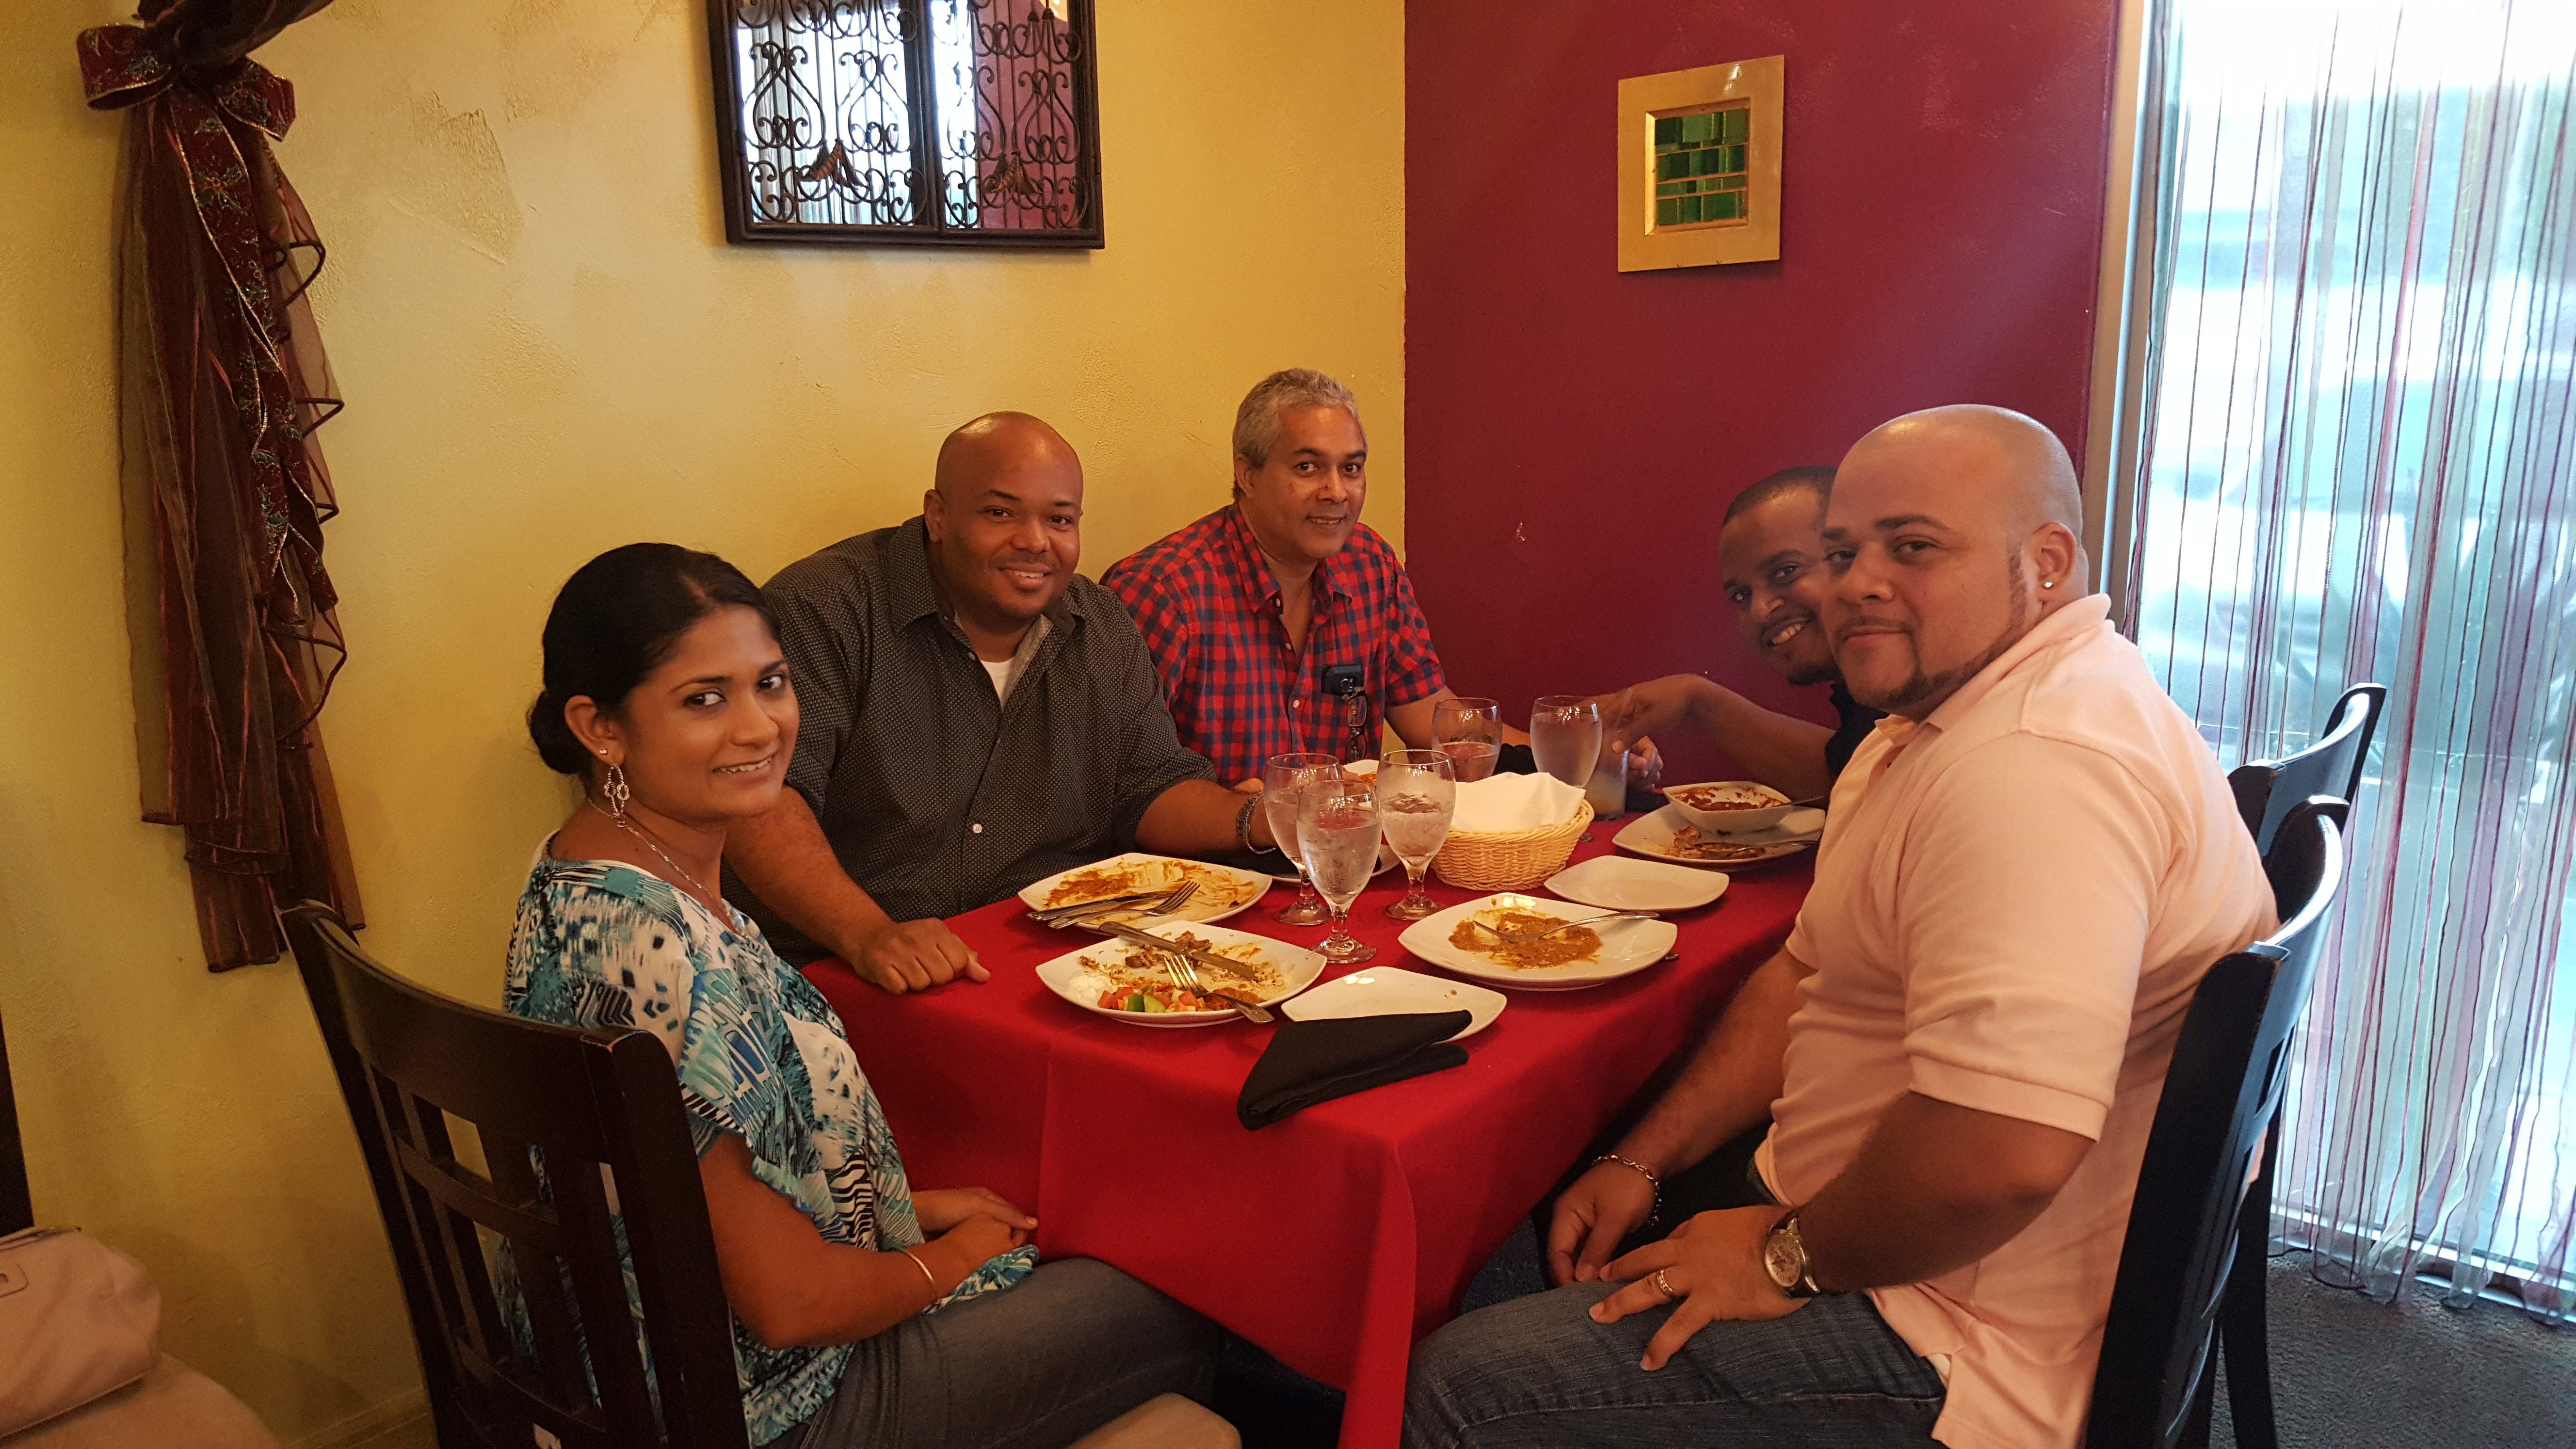 Family Around a Table at Southern Spice